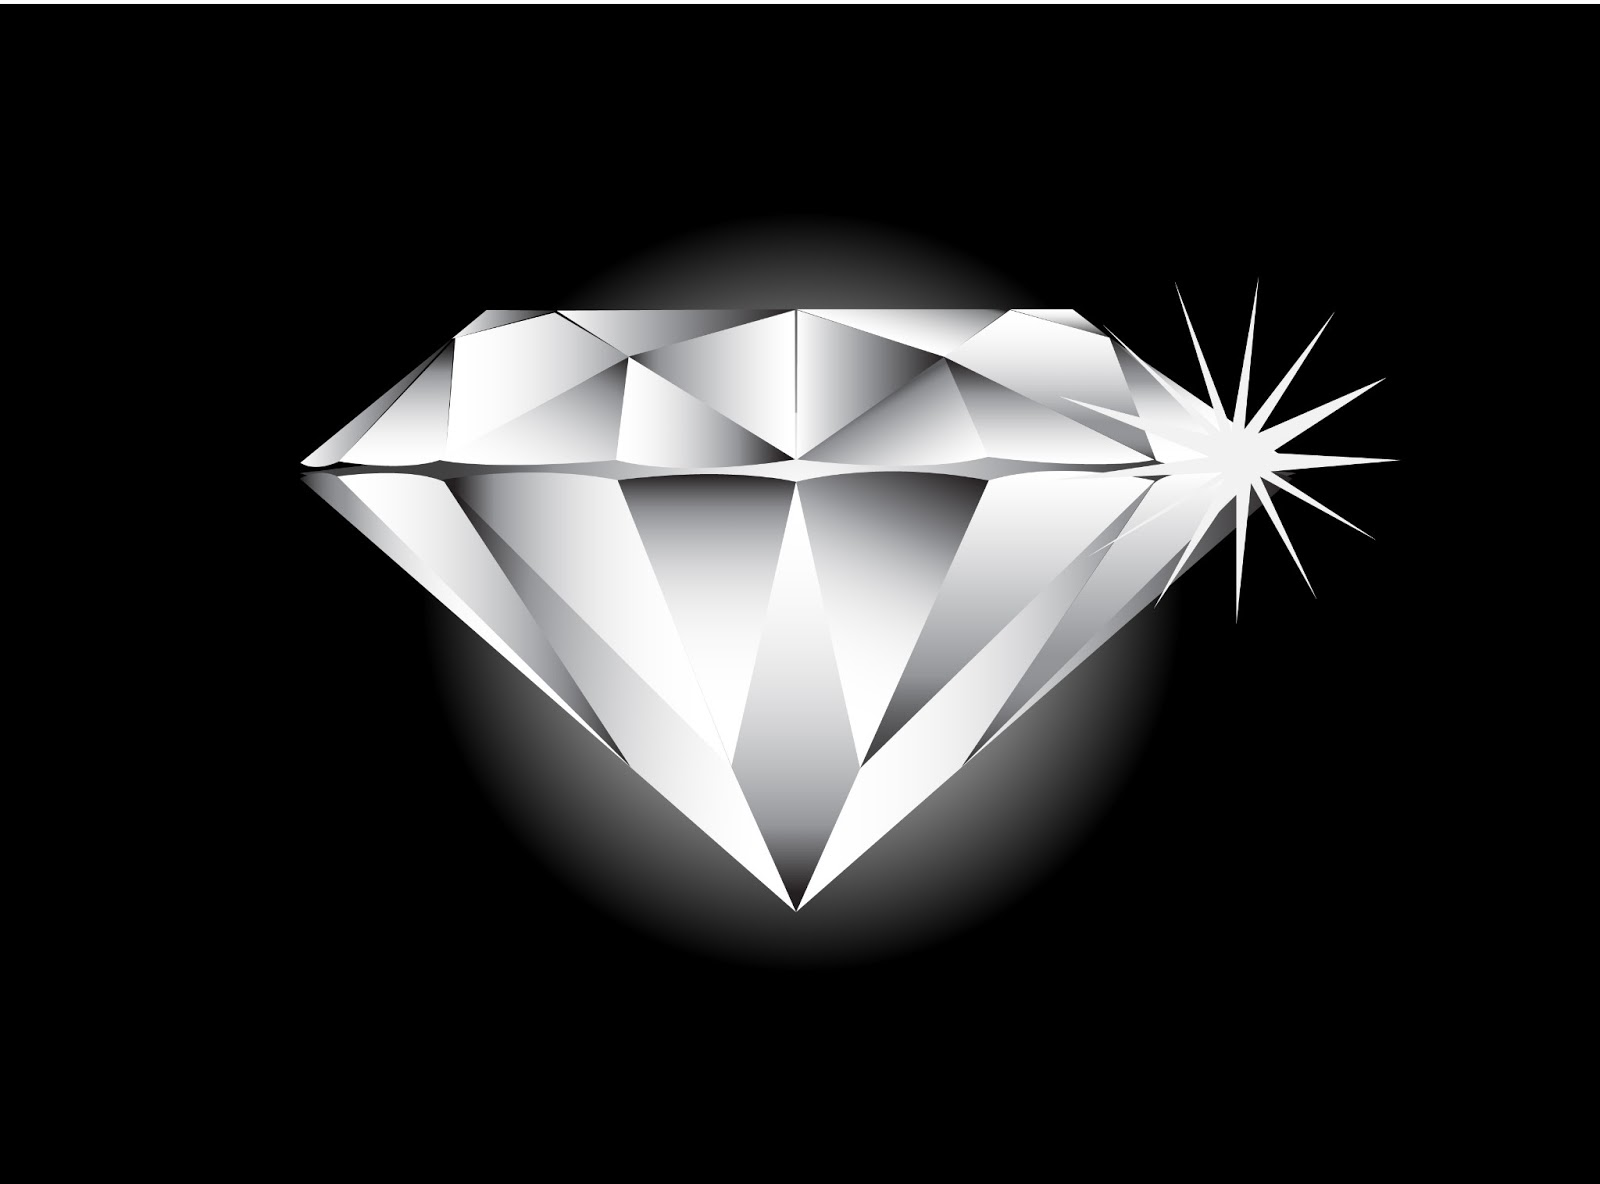 diamond vector free download - photo #18